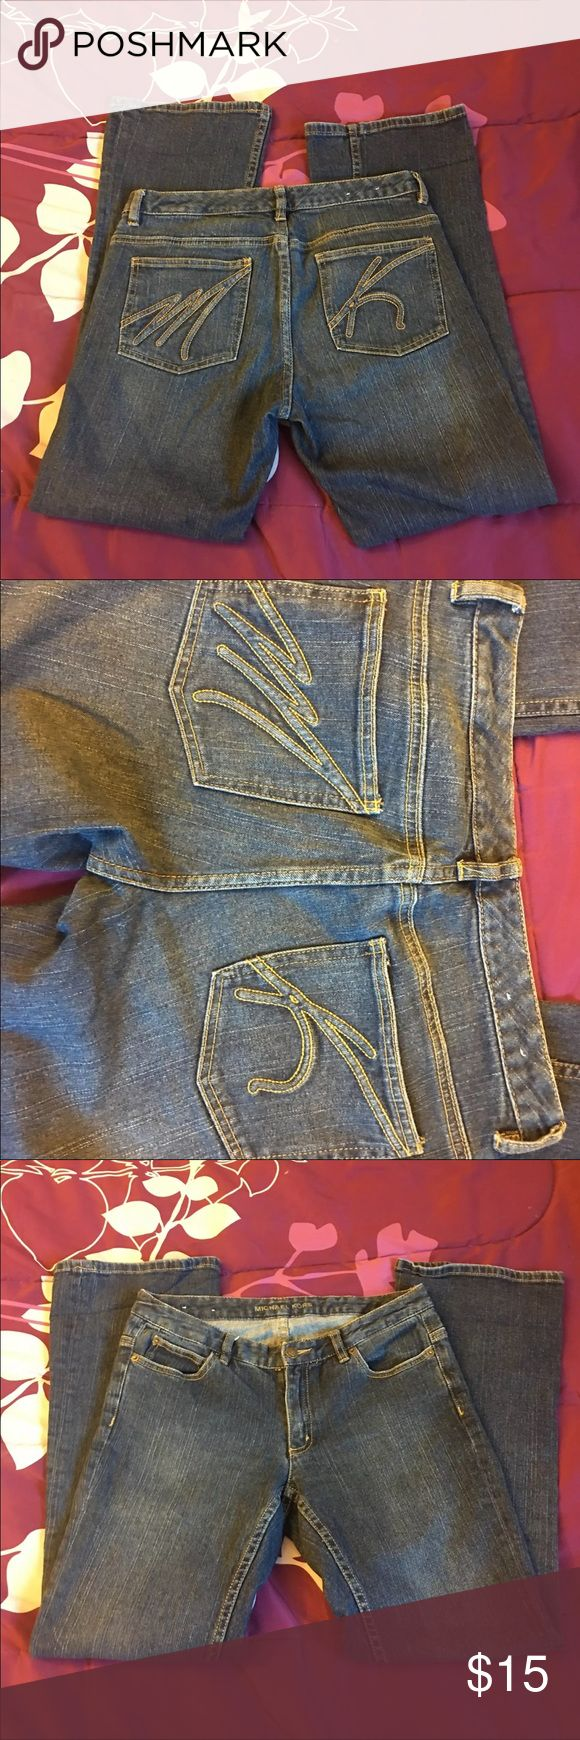 Michael Khors Jeans Size 6 Great looking pair of jeans.  Beautiful back packets. One of the pant legs it's a little twisted when you put them on.  You can easily twisted back.  Size 6 KORS Michael Kors Jeans Boot Cut